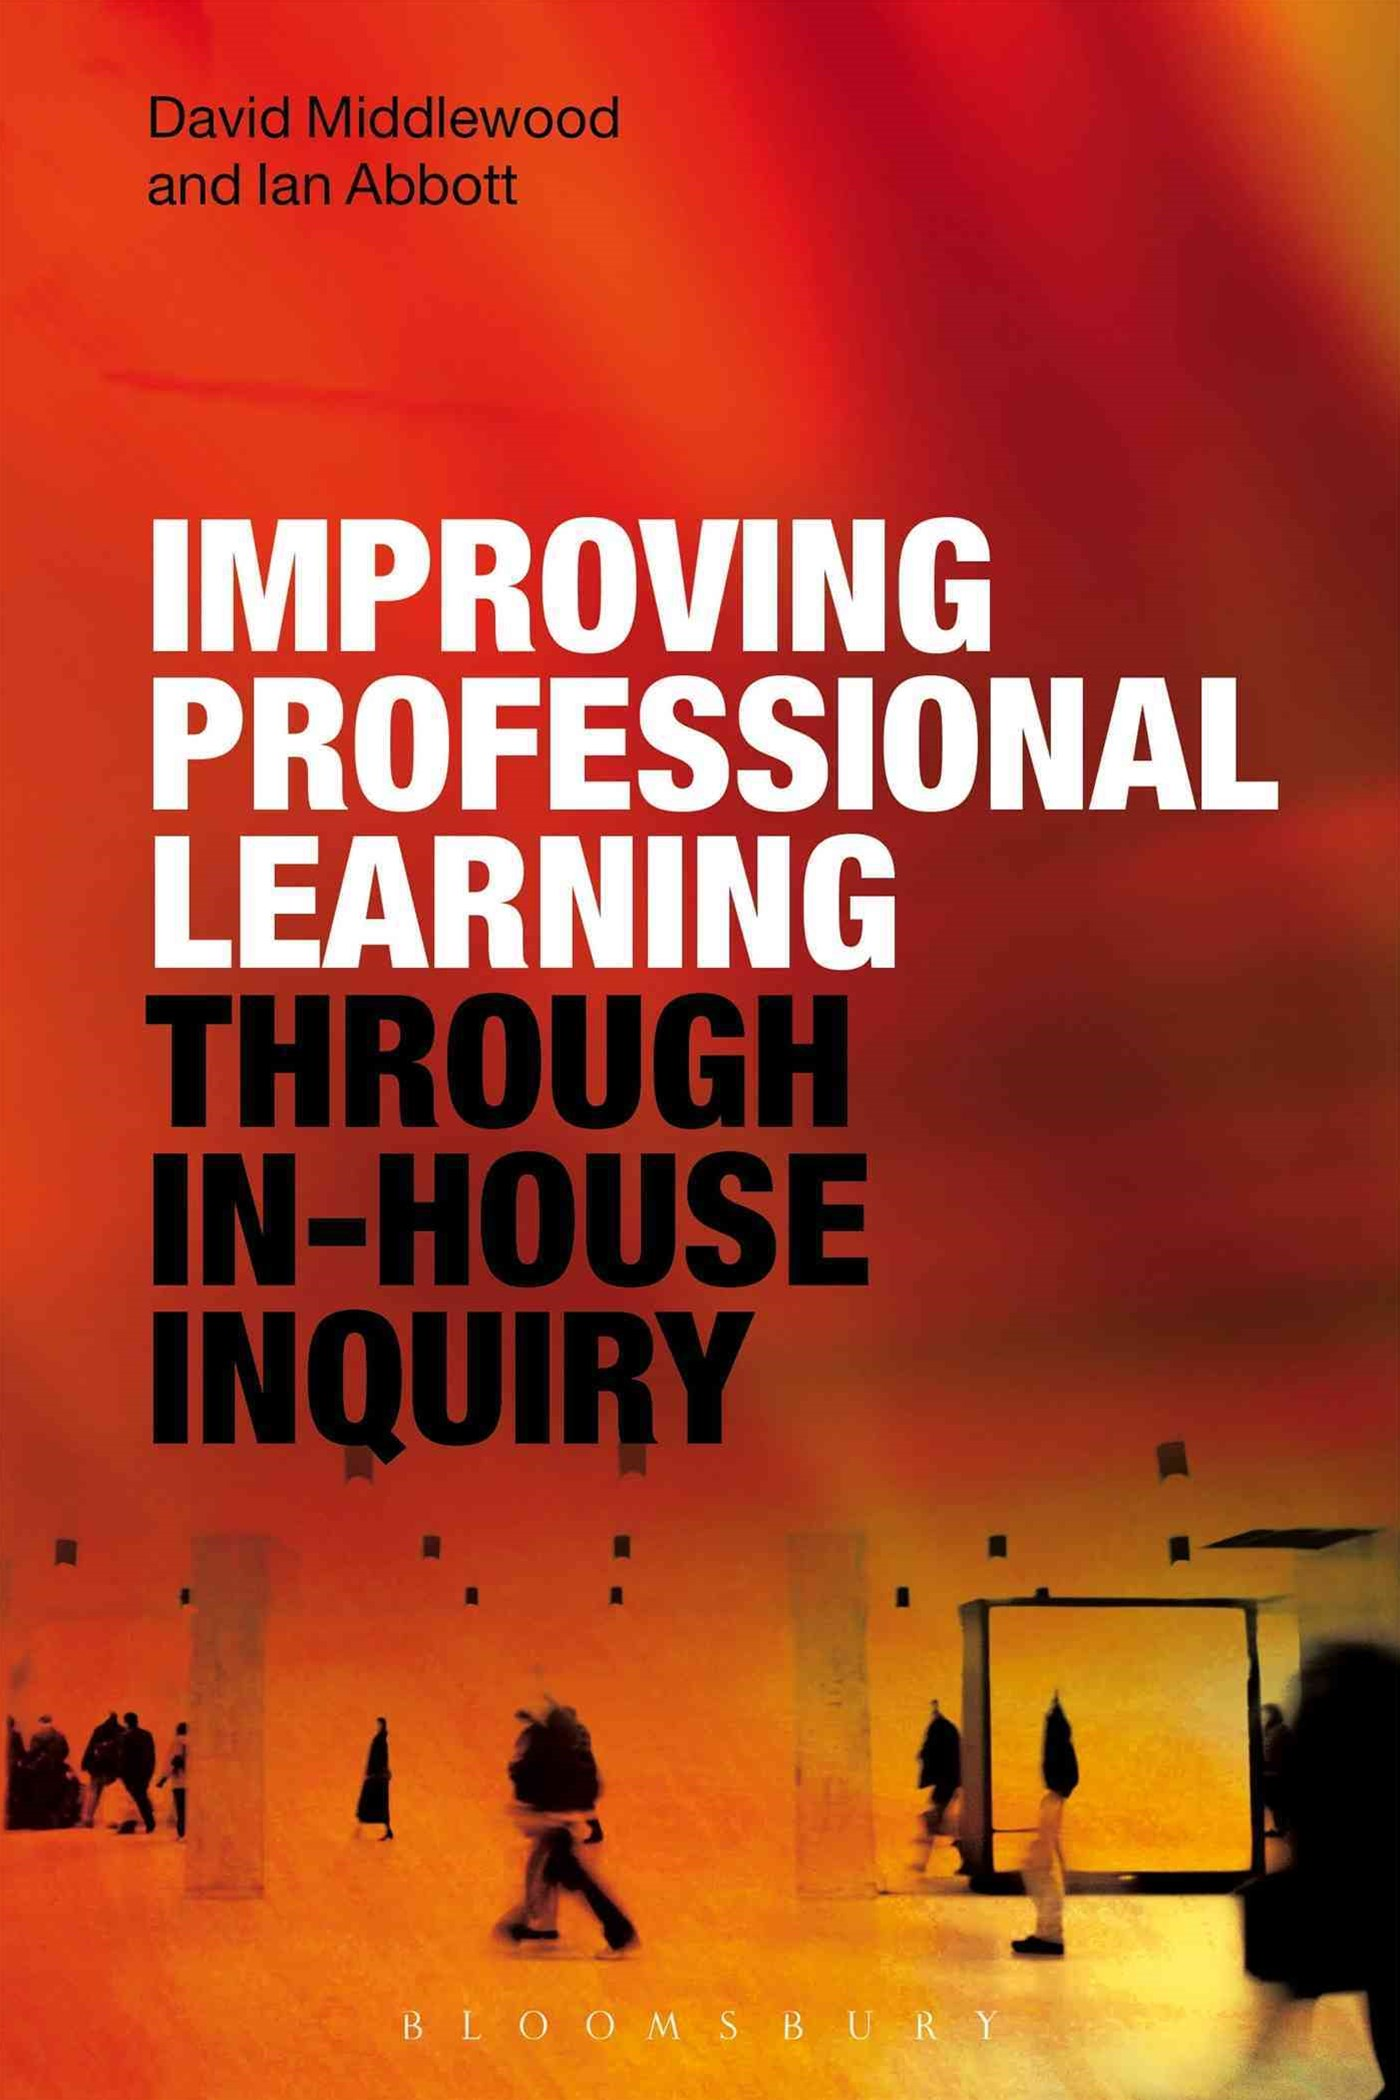 Improving Professional Learning Through in-House Inquiry